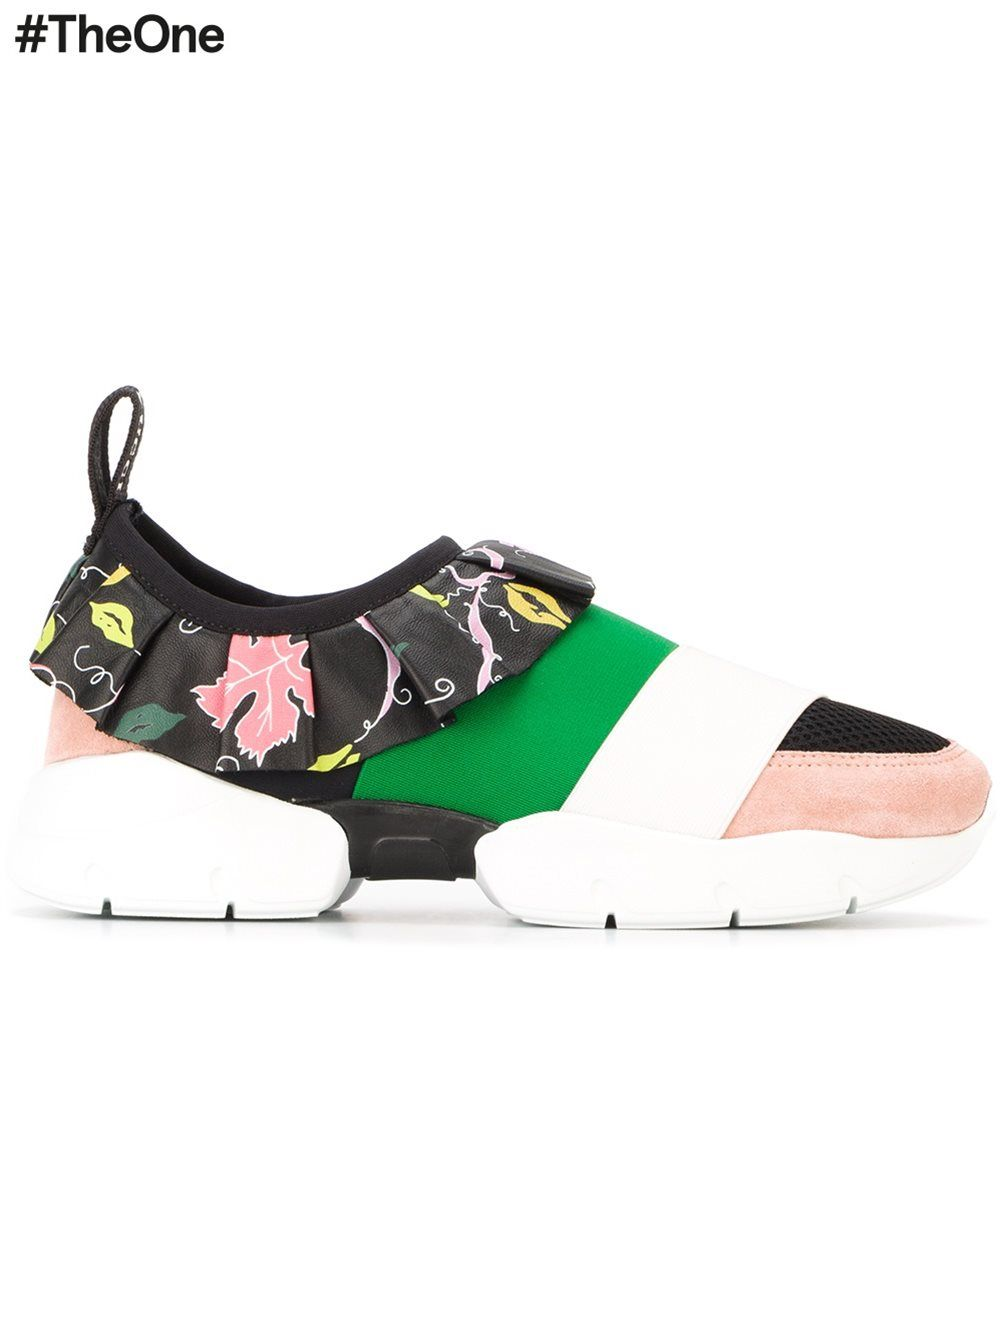 1b960a3adc1d Emilio Pucci ruffled detail sneakers   pop   Pinterest   Chaussure